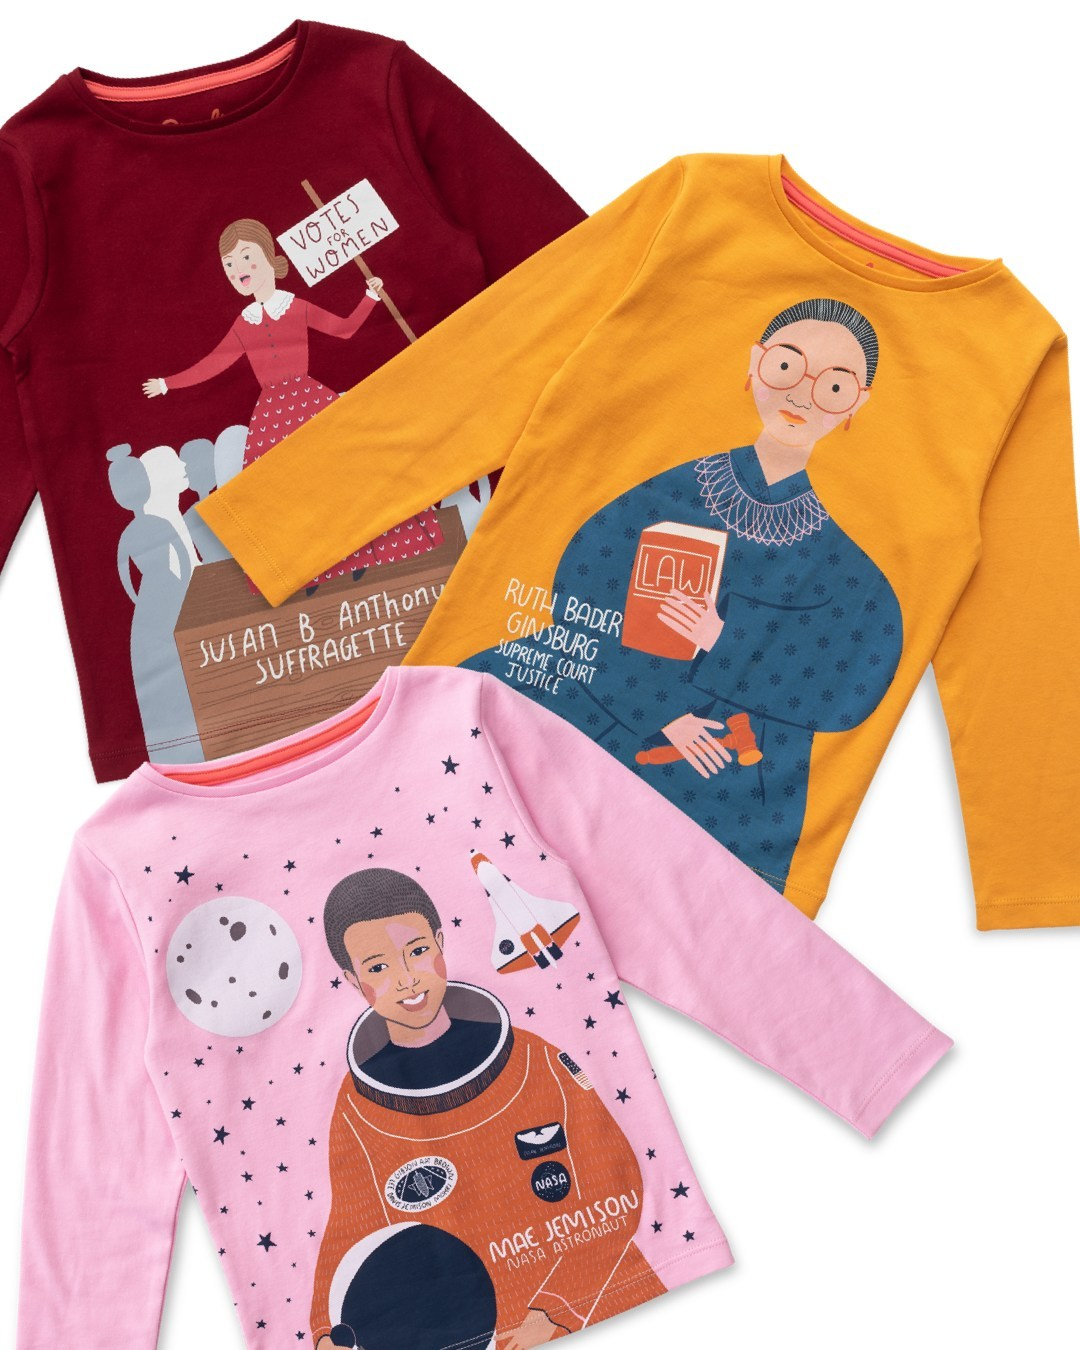 Piccolina's Trailblazer Tee Series comes in 13 designs including Susan B. Anthony, Ruth Bader Ginsburg and Mae Jemison. $28 @piccolinakids.com